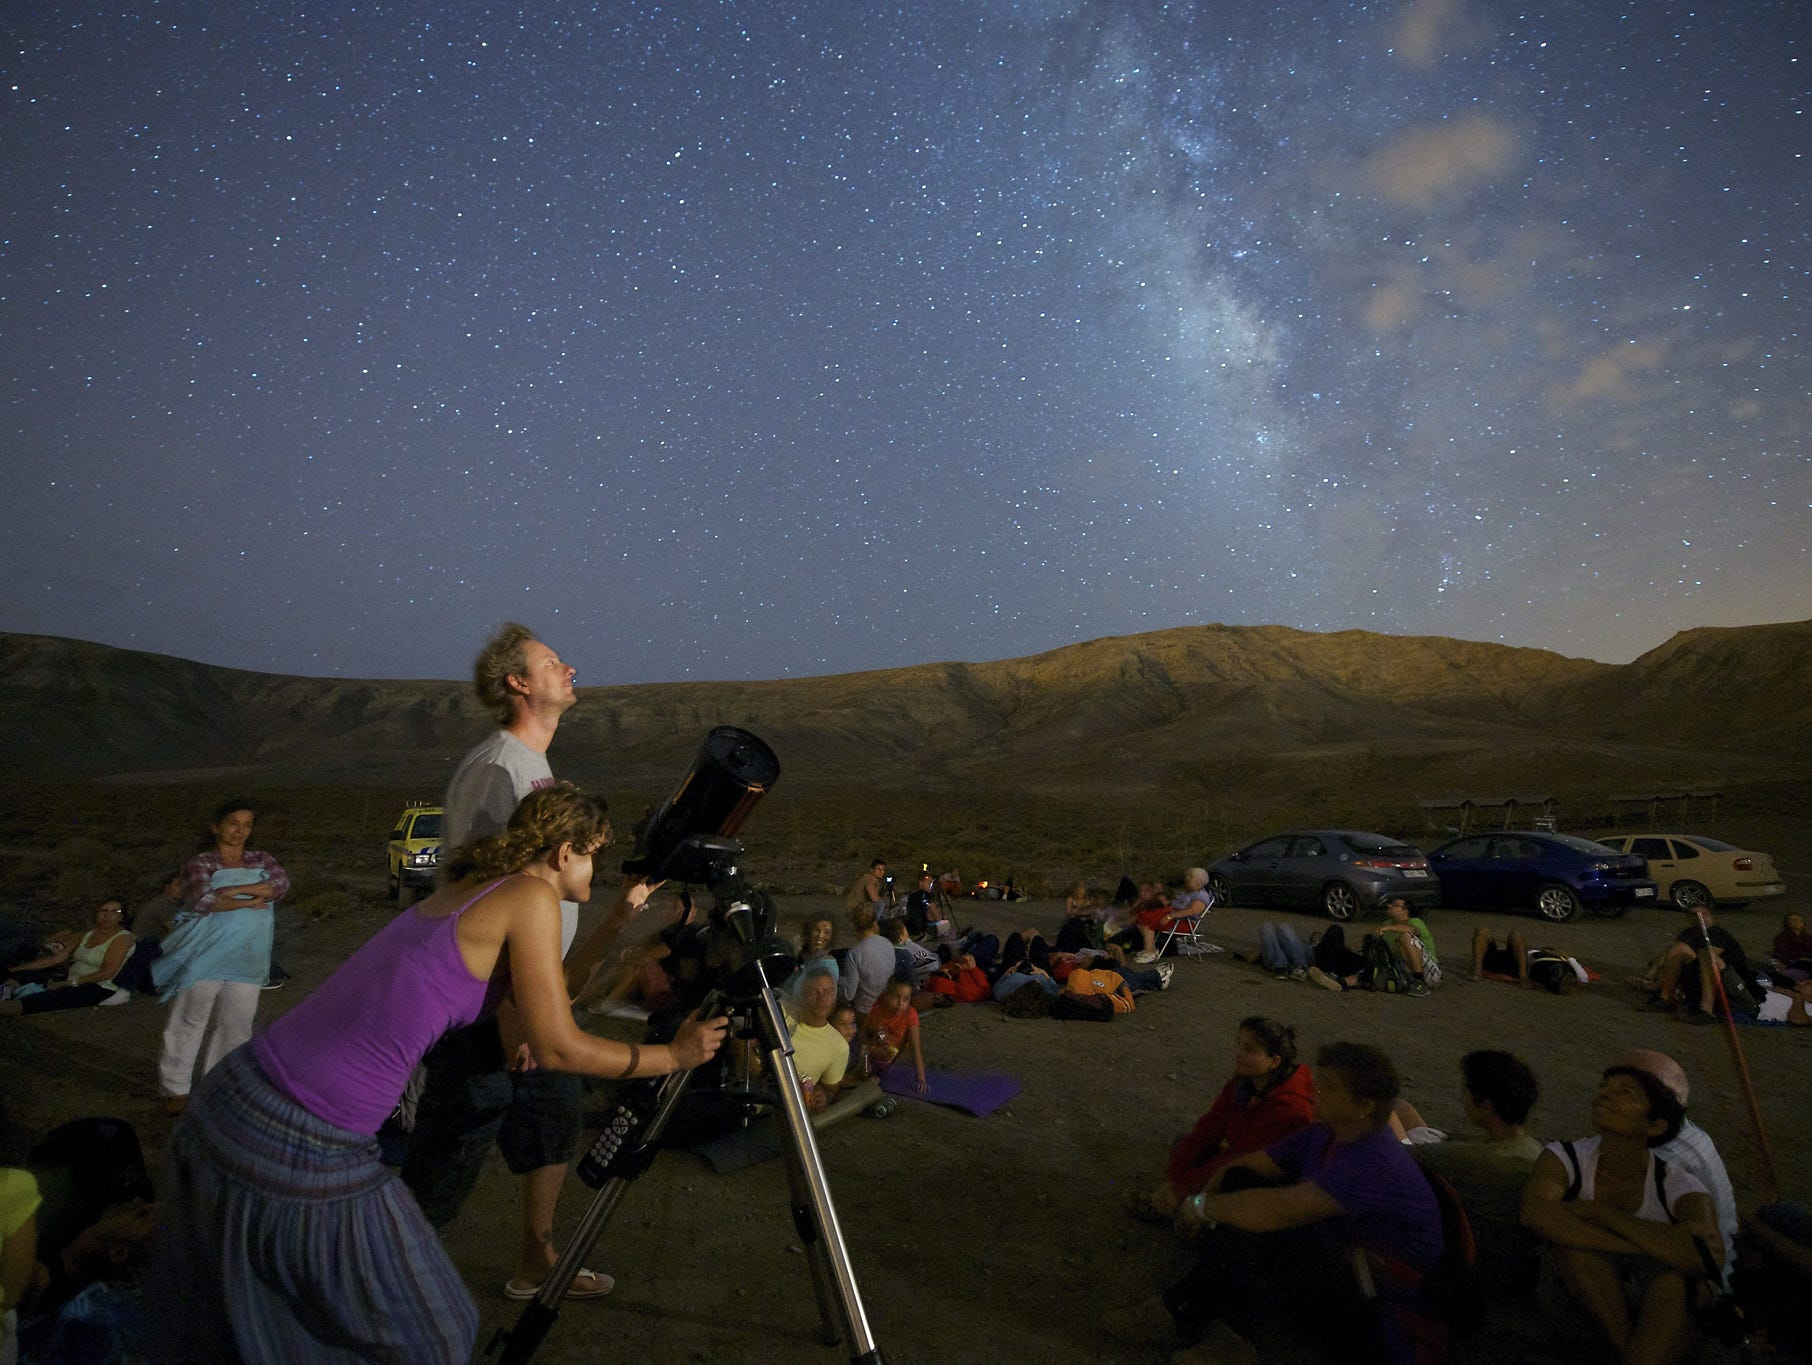 Stargazers observe the Perseid meteor shower in Atalayita, Canary Islands, Spain.